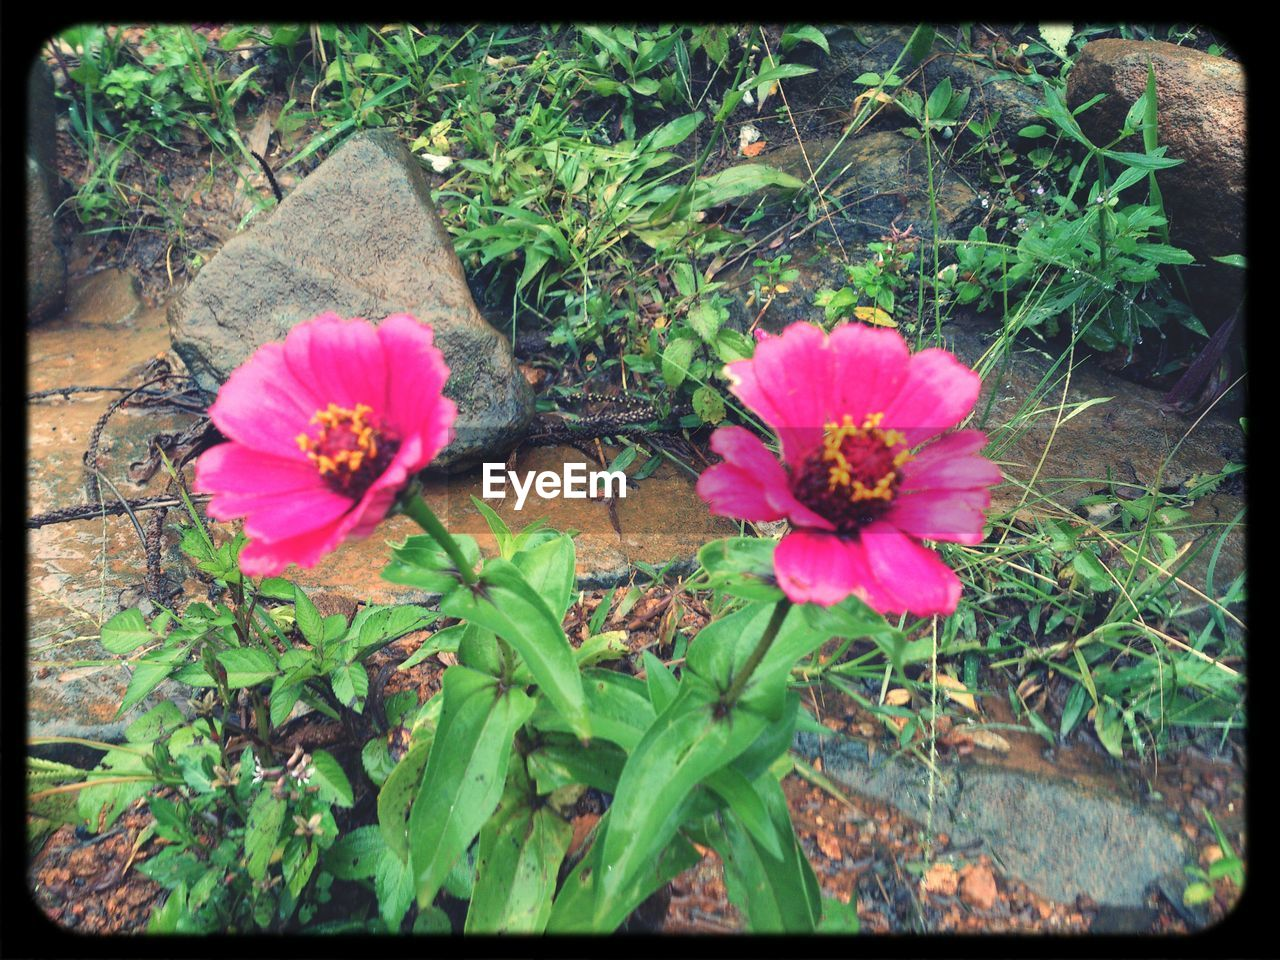 flower, growth, plant, nature, pink color, no people, outdoors, fragility, blooming, freshness, beauty in nature, flower head, close-up, day